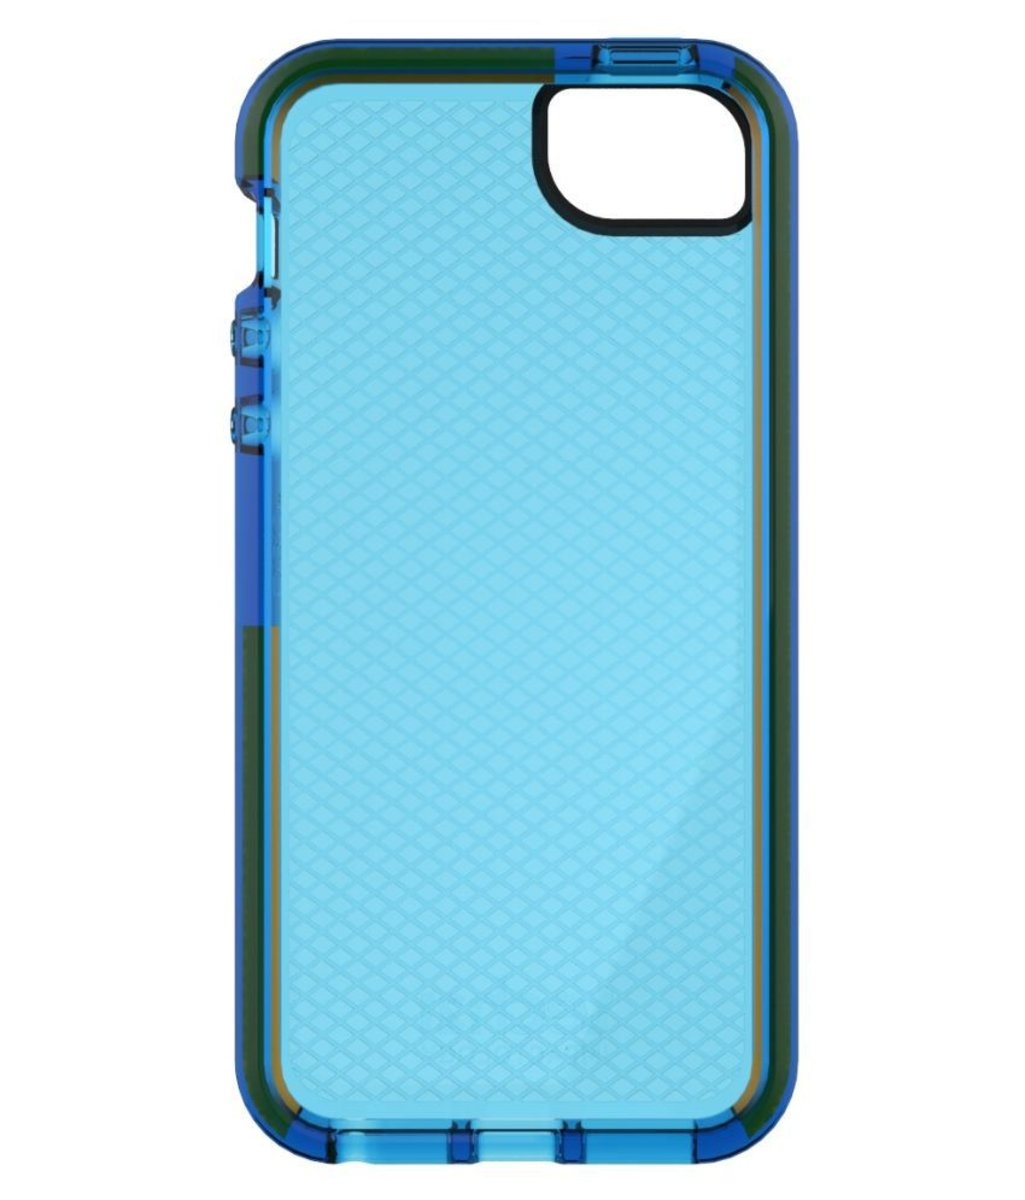 Evo Mesh Case for Apple iPhone 5/5s/5se Drop Proff Blue